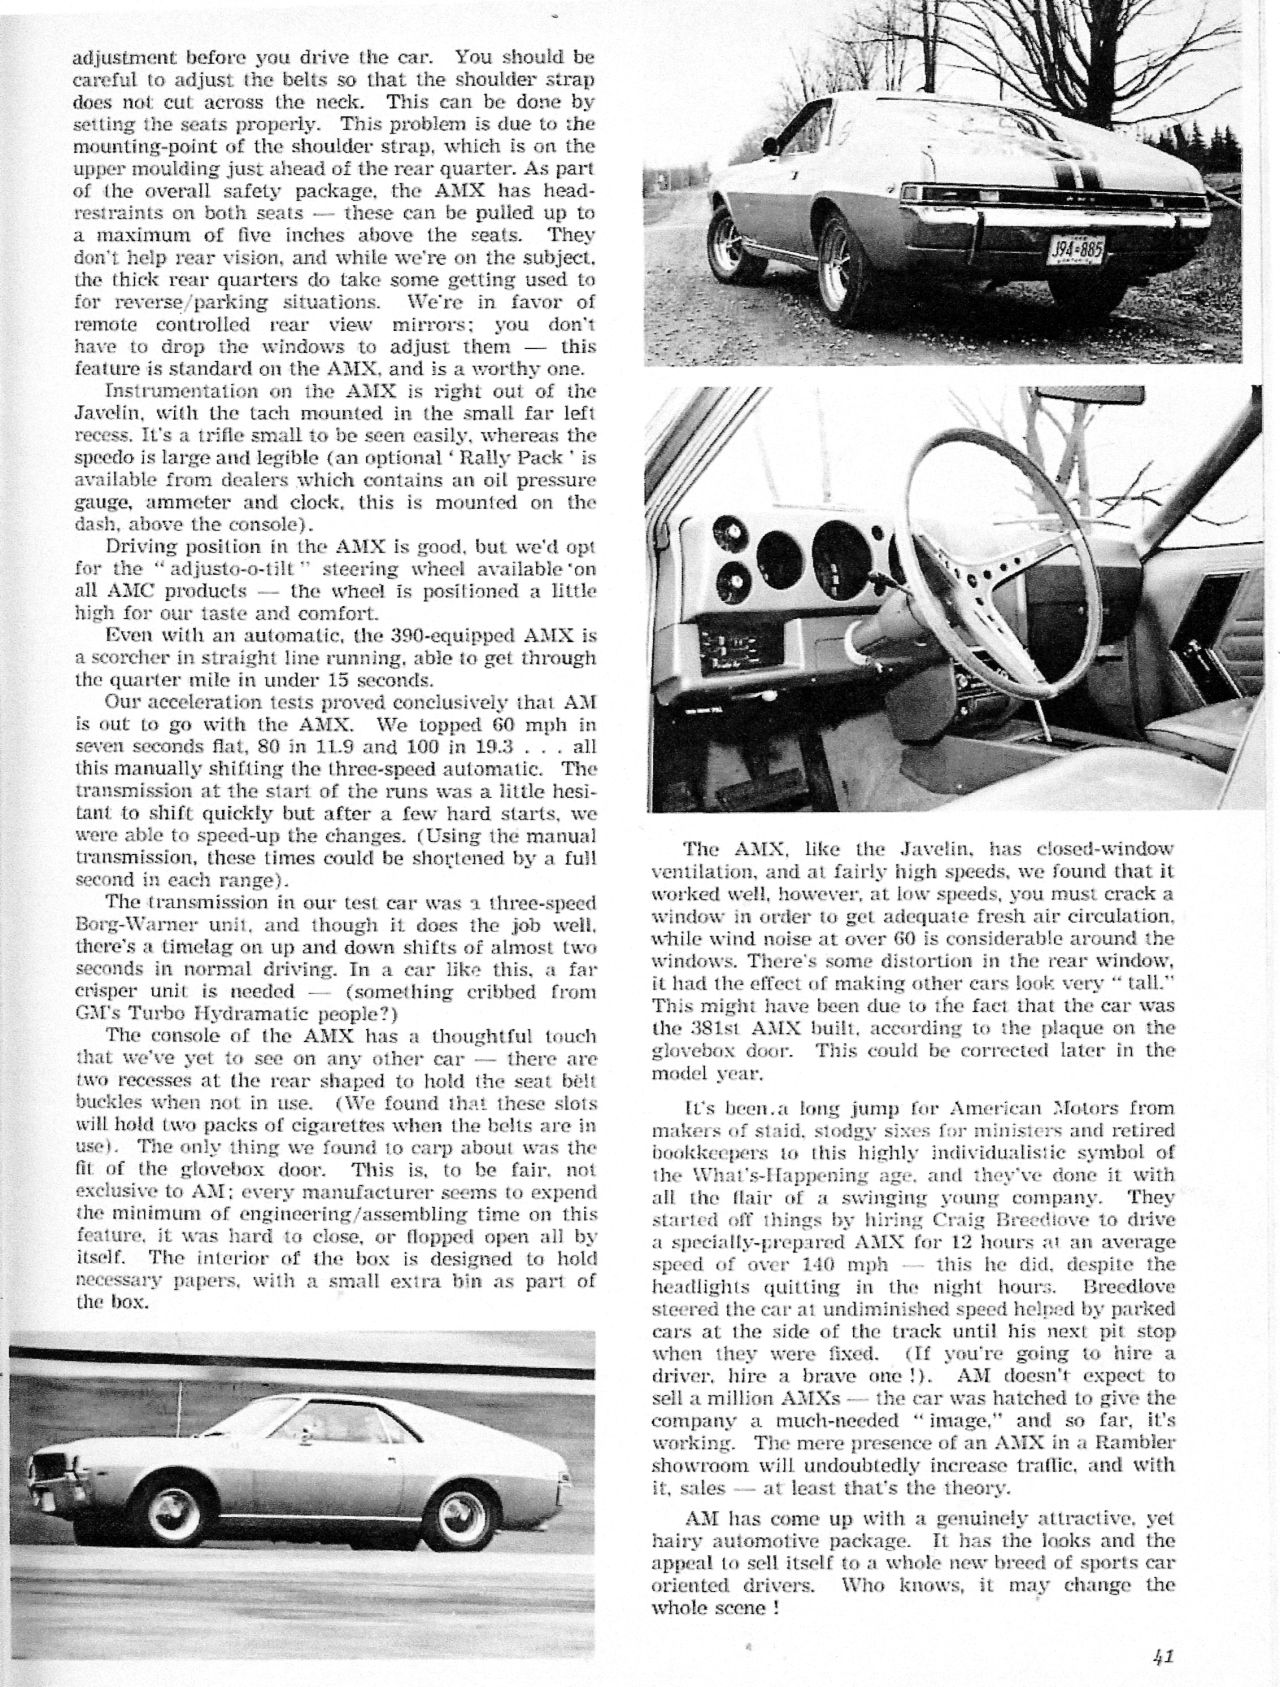 The American Motors AMX: The Two-Seat Muscle Car | Performance cars ...